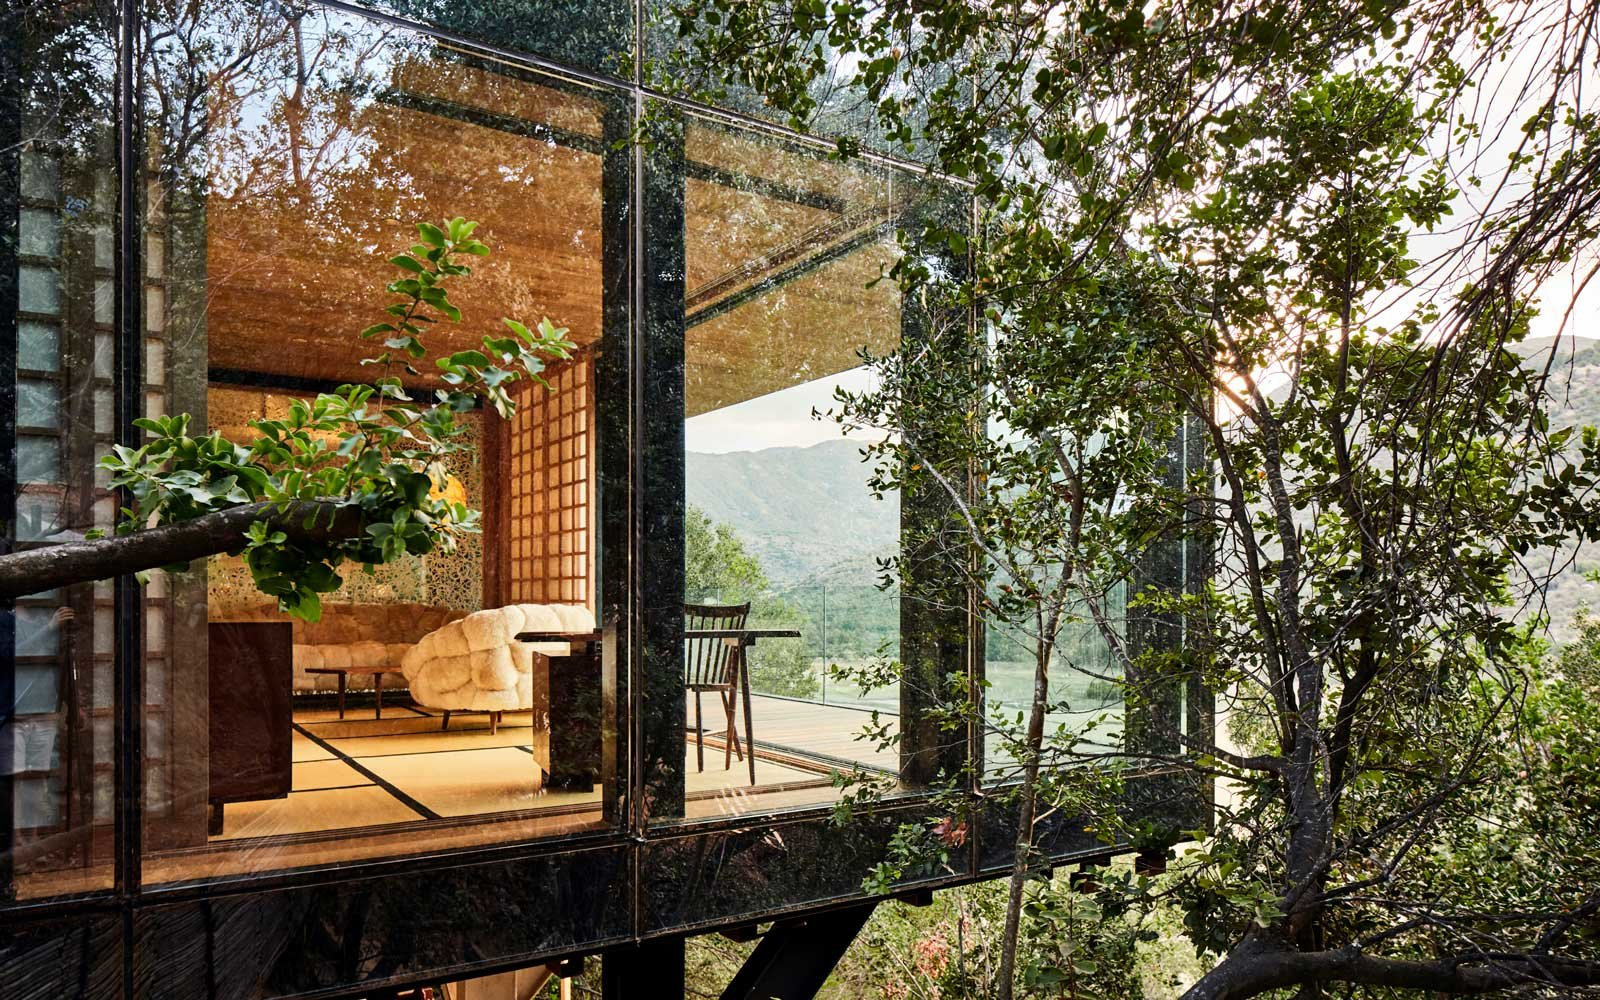 These Glass Houses Have an Outdoor Tub Overlooking Chile's Wine Country